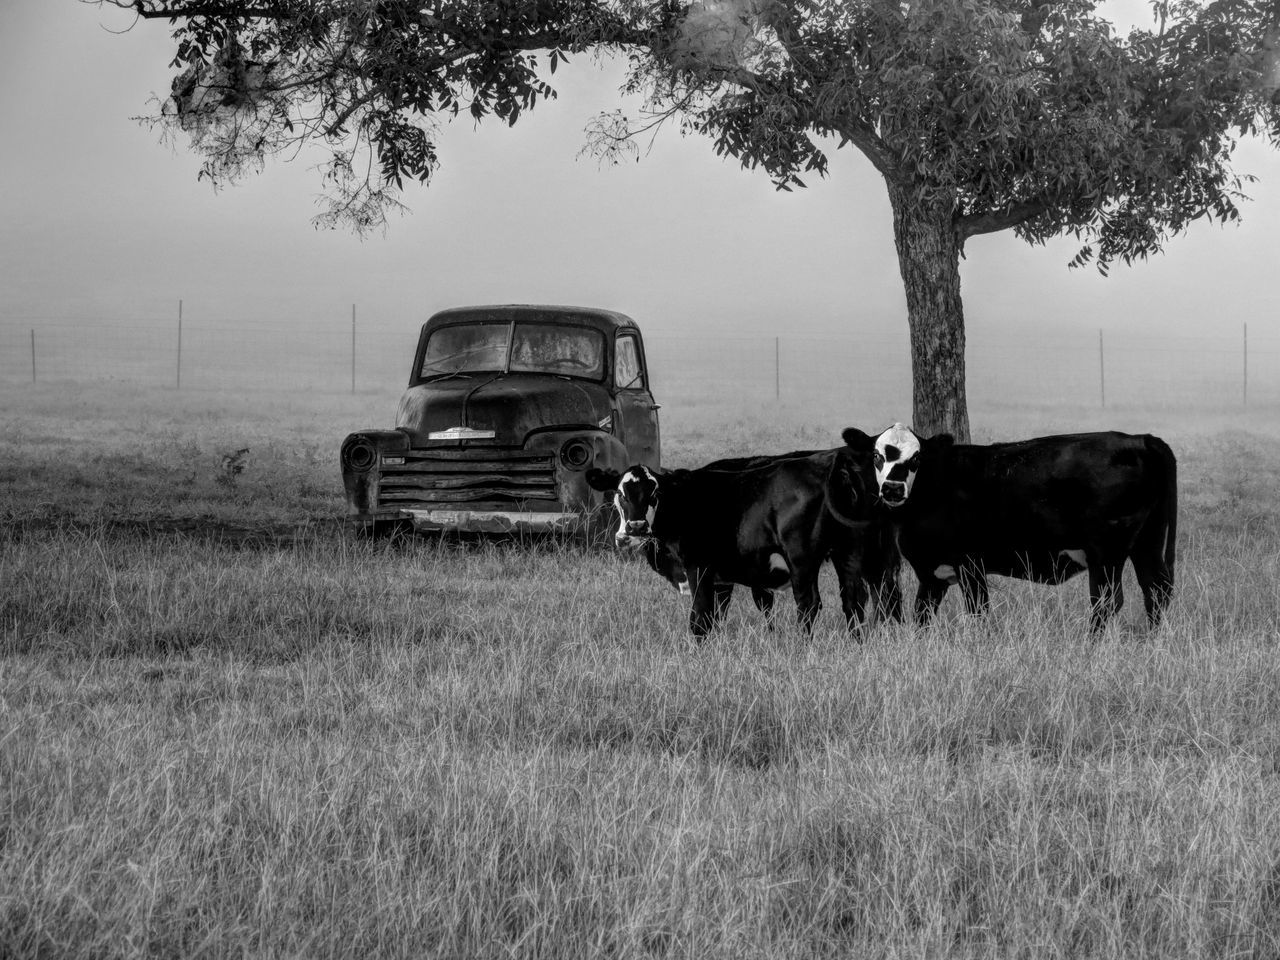 Farmer's cows Cows Grazing Animal Themes Tree No People Transportation Mode Of Transport Domestic Animals Field Land Vehicle Nature Mammal Outdoors Day cows morning fog